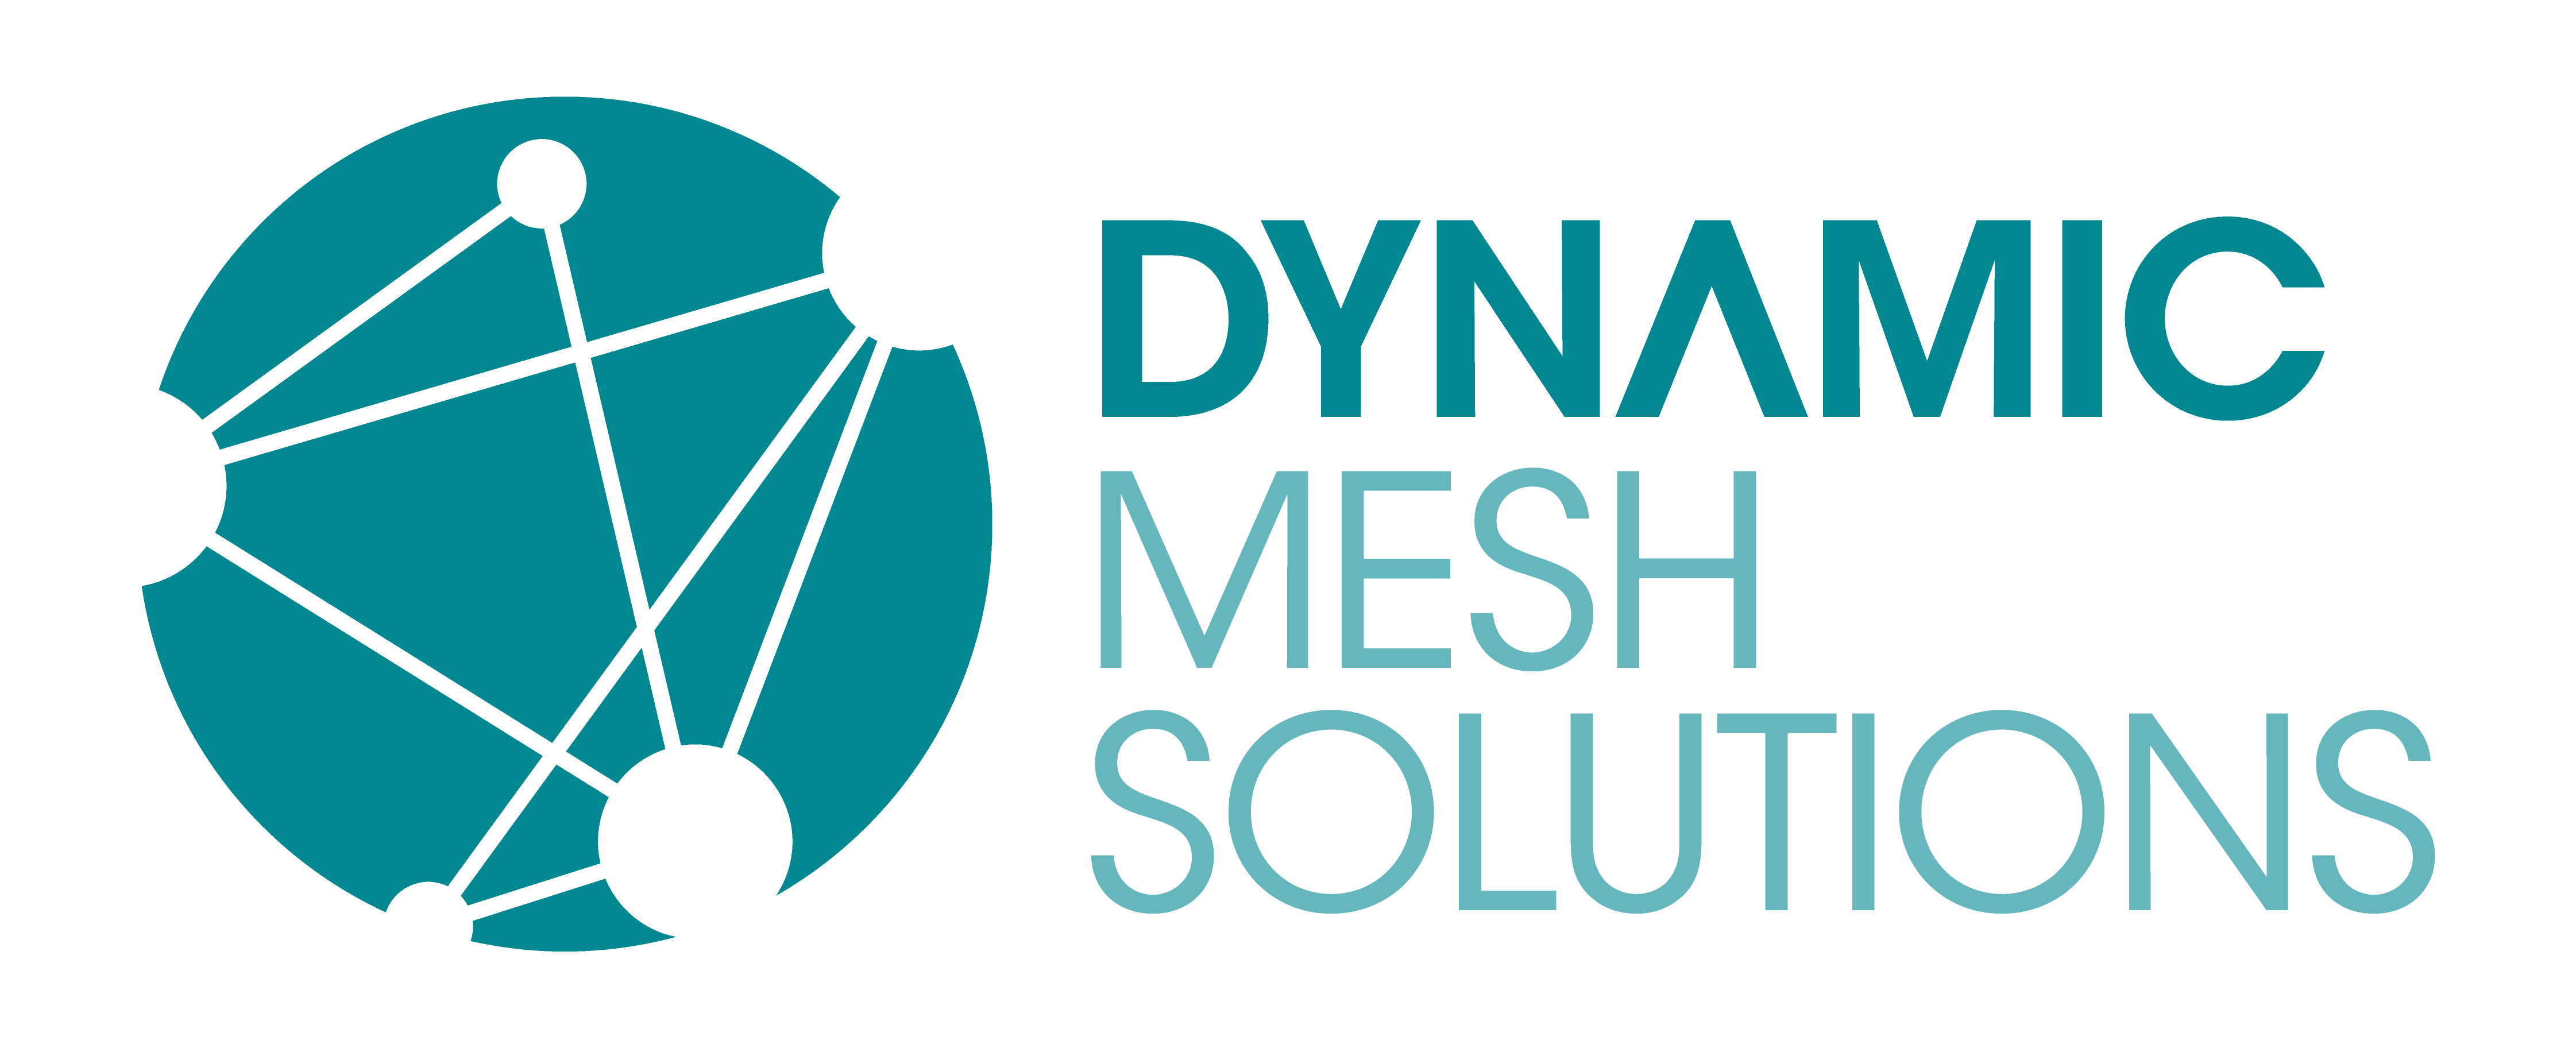 Dynamic Mesh Solutions